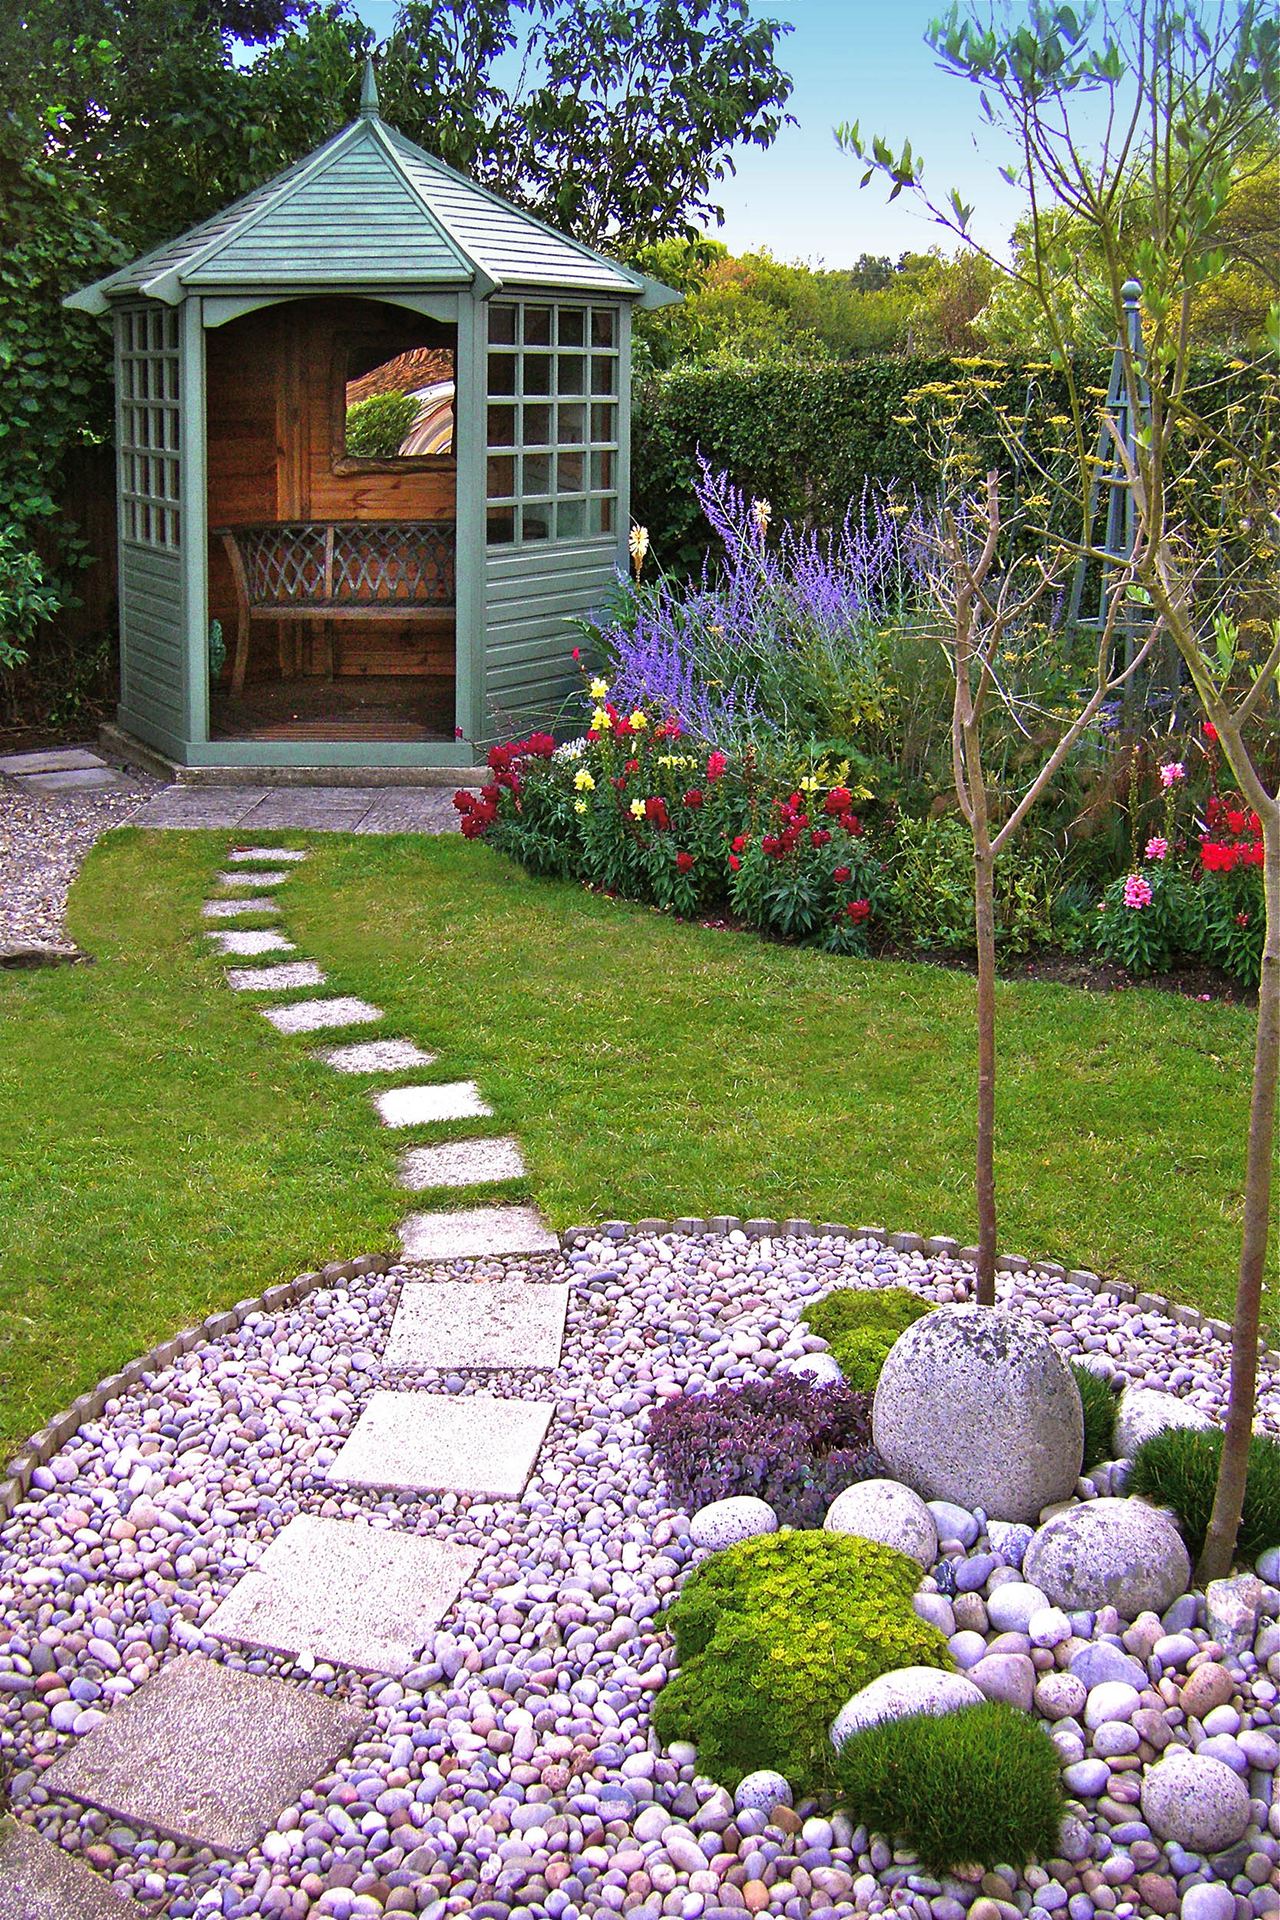 50 Best Backyard Landscaping Ideas And Designs In 2019 with 13 Clever Initiatives of How to Make Landscaping Ideas For The Backyard